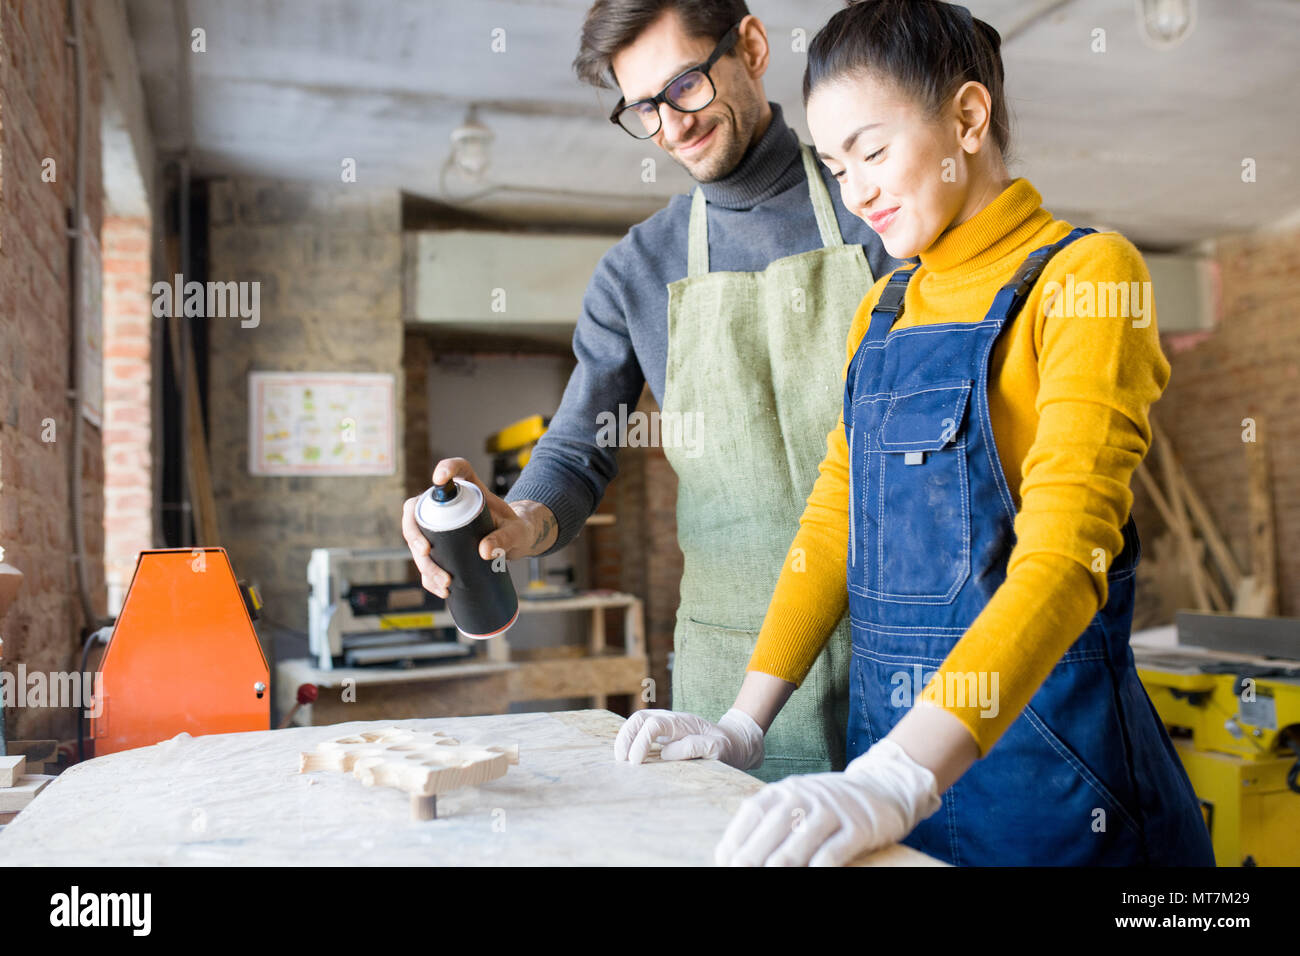 Two artists Doing Creative Woodwork - Stock Image